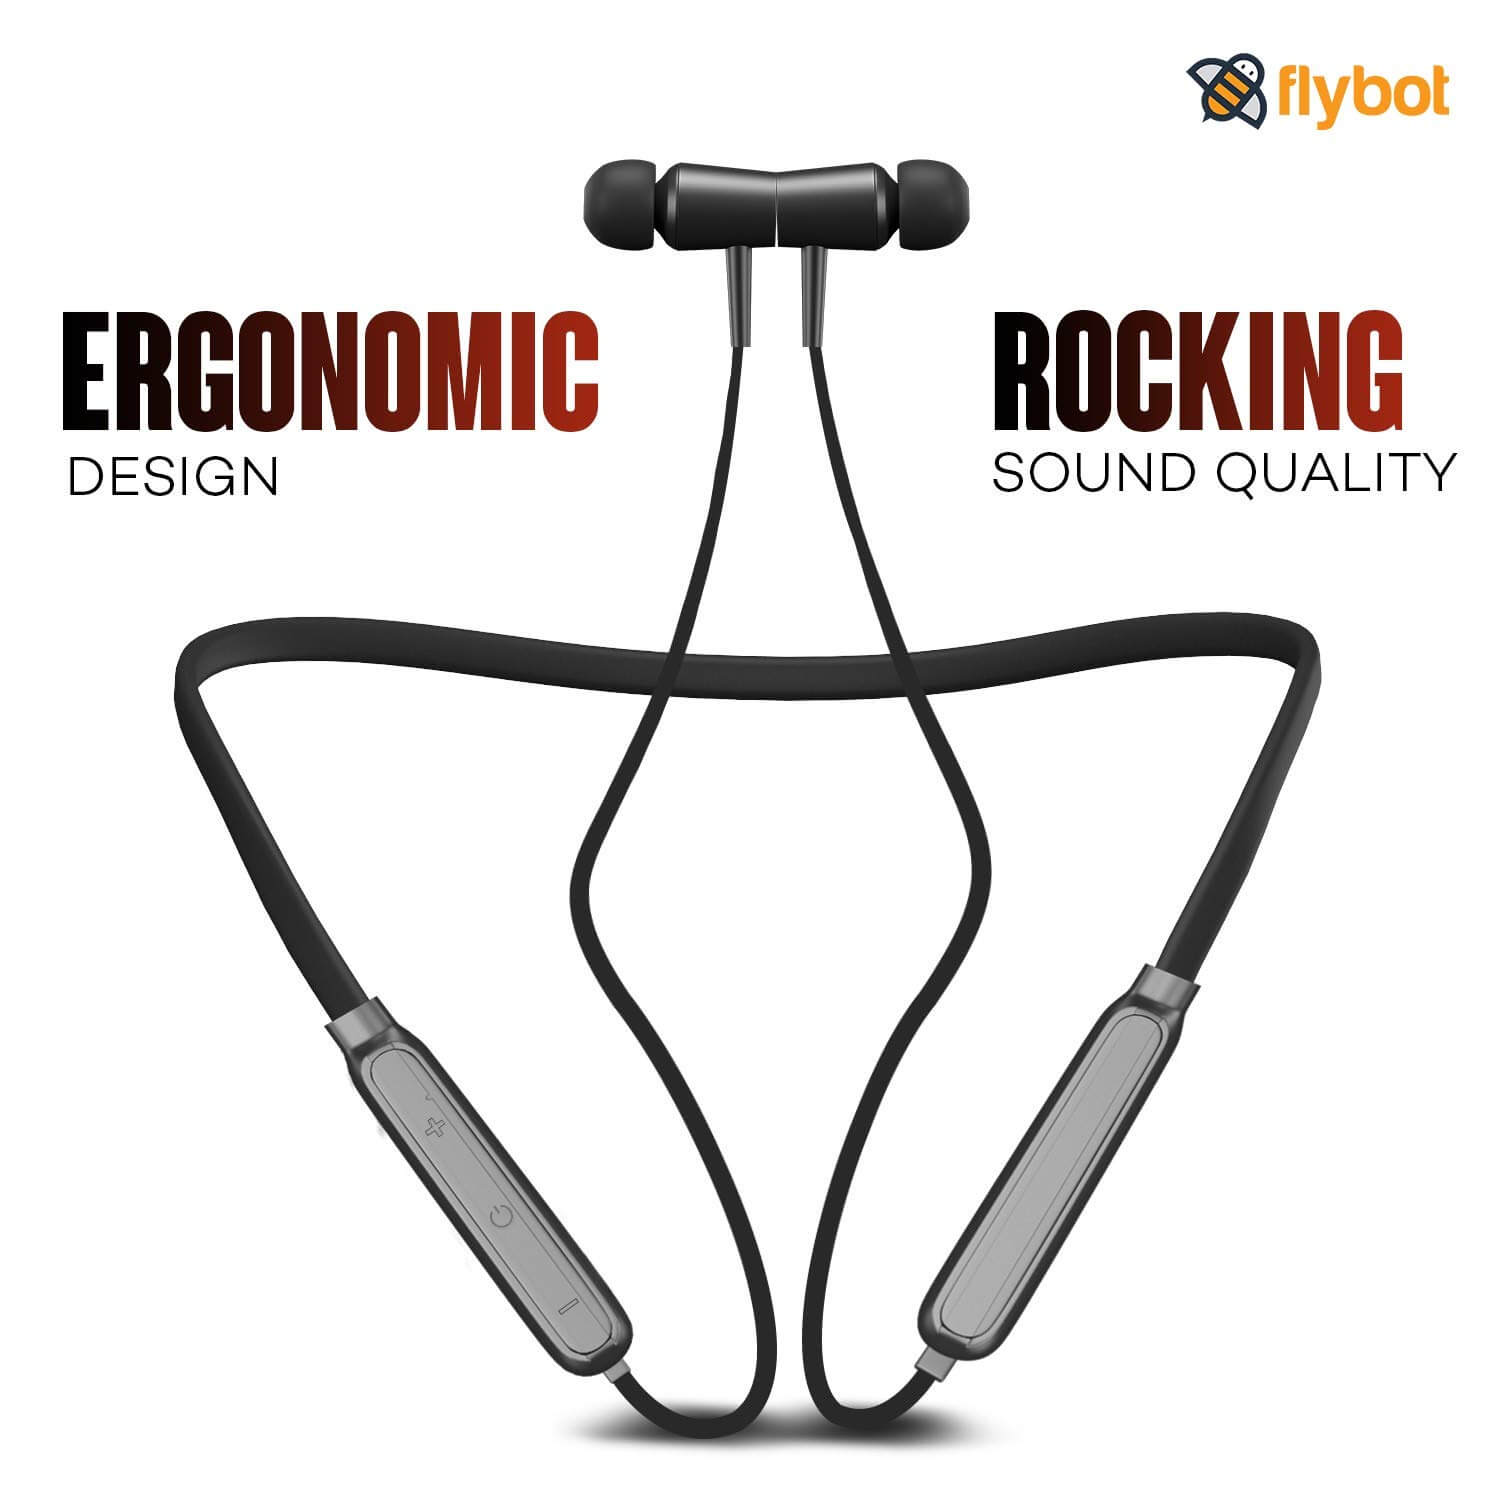 Flybot Action In Ear Wireless Bluetooth Neckband And Magnetic Earbuds, Ipx4 Water Resistant Sports Earphones, Built In Mic (black)